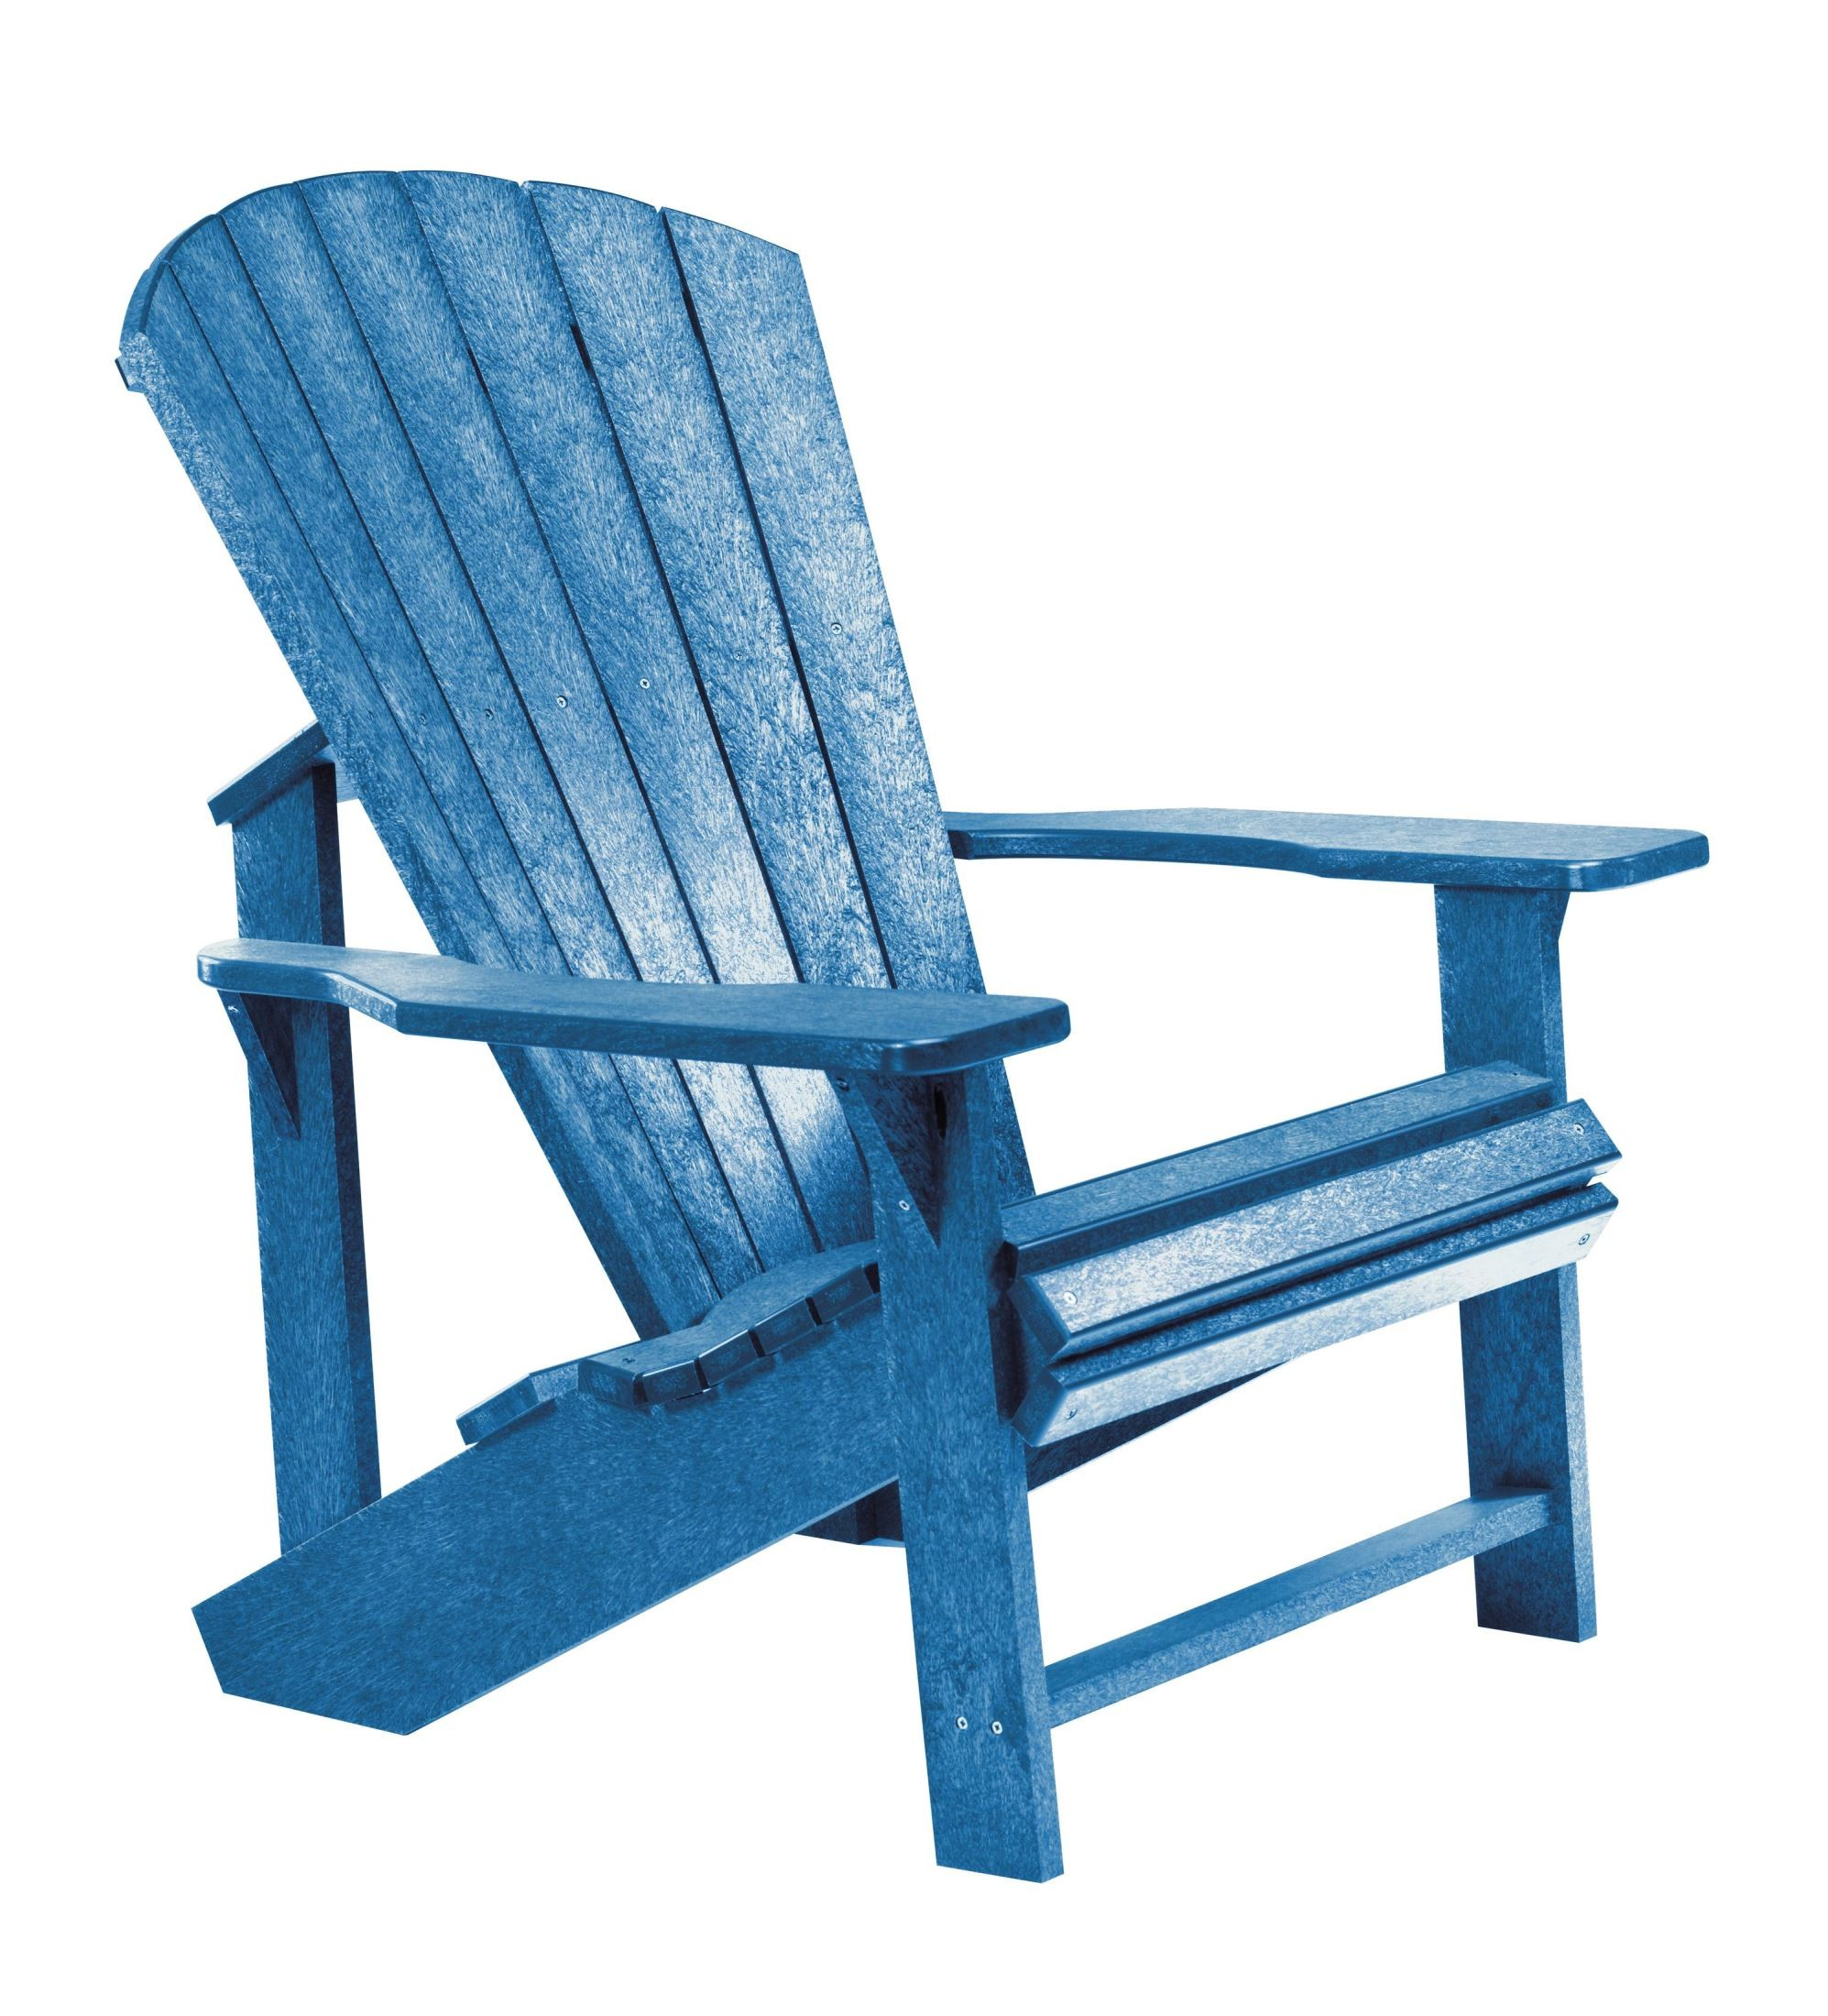 Generations Blue Adirondack Chair From Cr Plastic C01 03